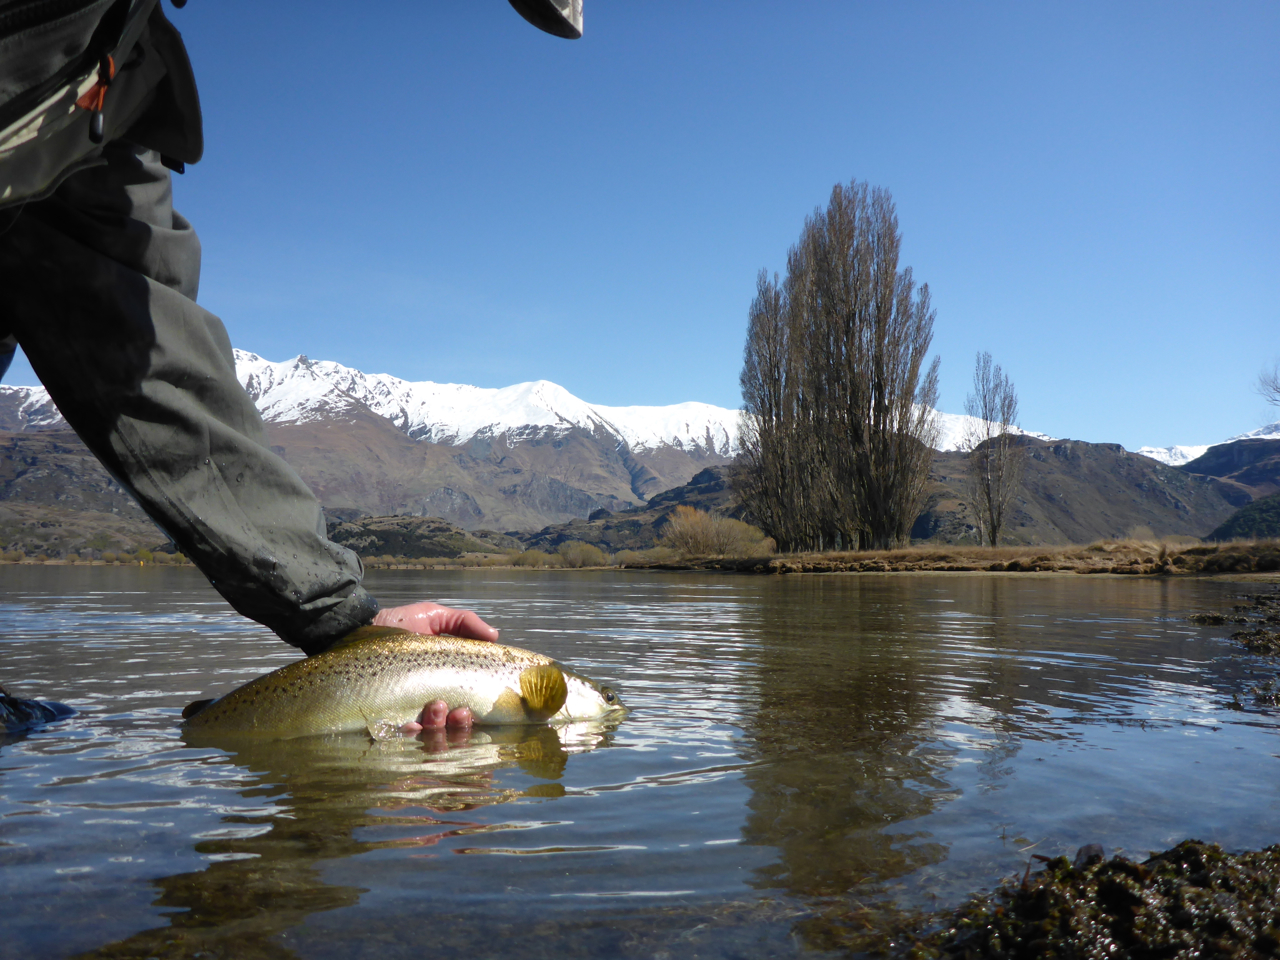 Buzzer fishing in the flat calm accounted for 4 good trout...